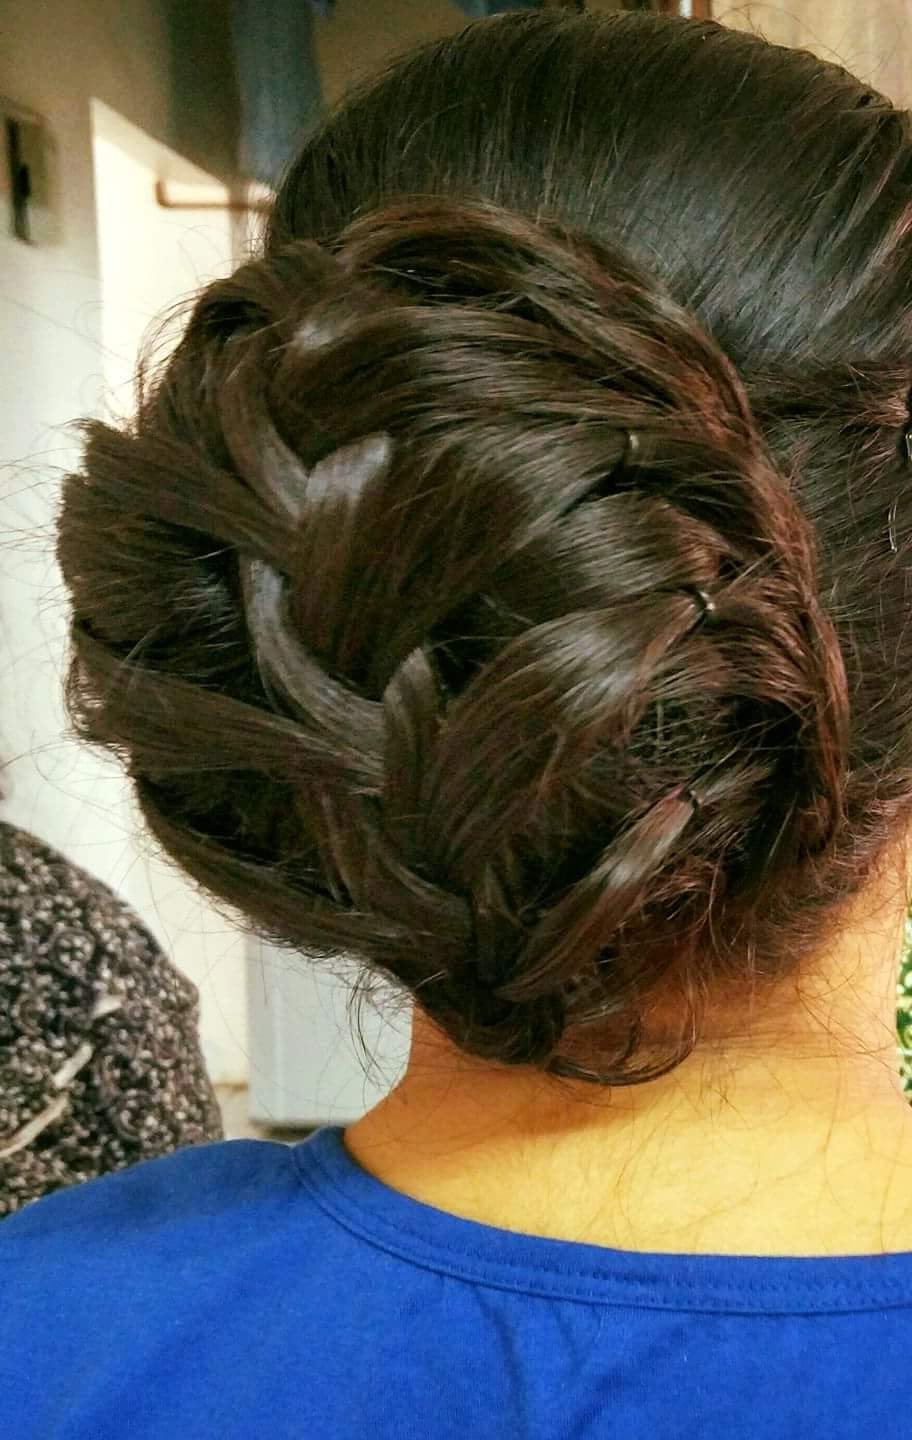 Latest Extra Thick Braided Bun Hairstyles For 65 Super Stylish Braided Bun Hairstyle To Leave Behind Some (Gallery 6 of 20)